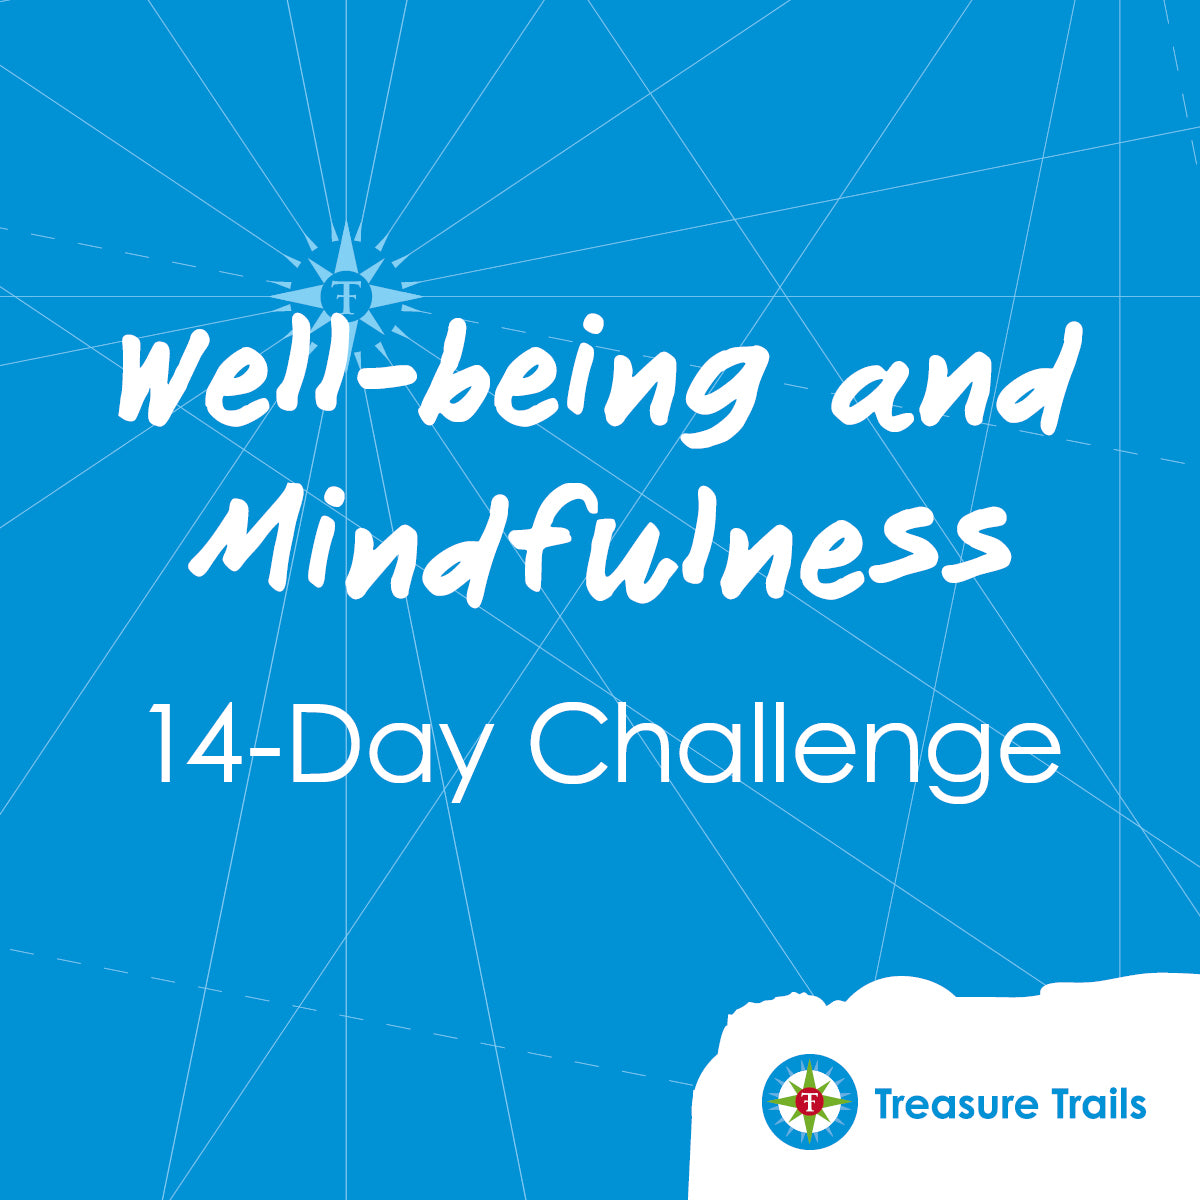 Train Training II - Well-being and Mindfulness